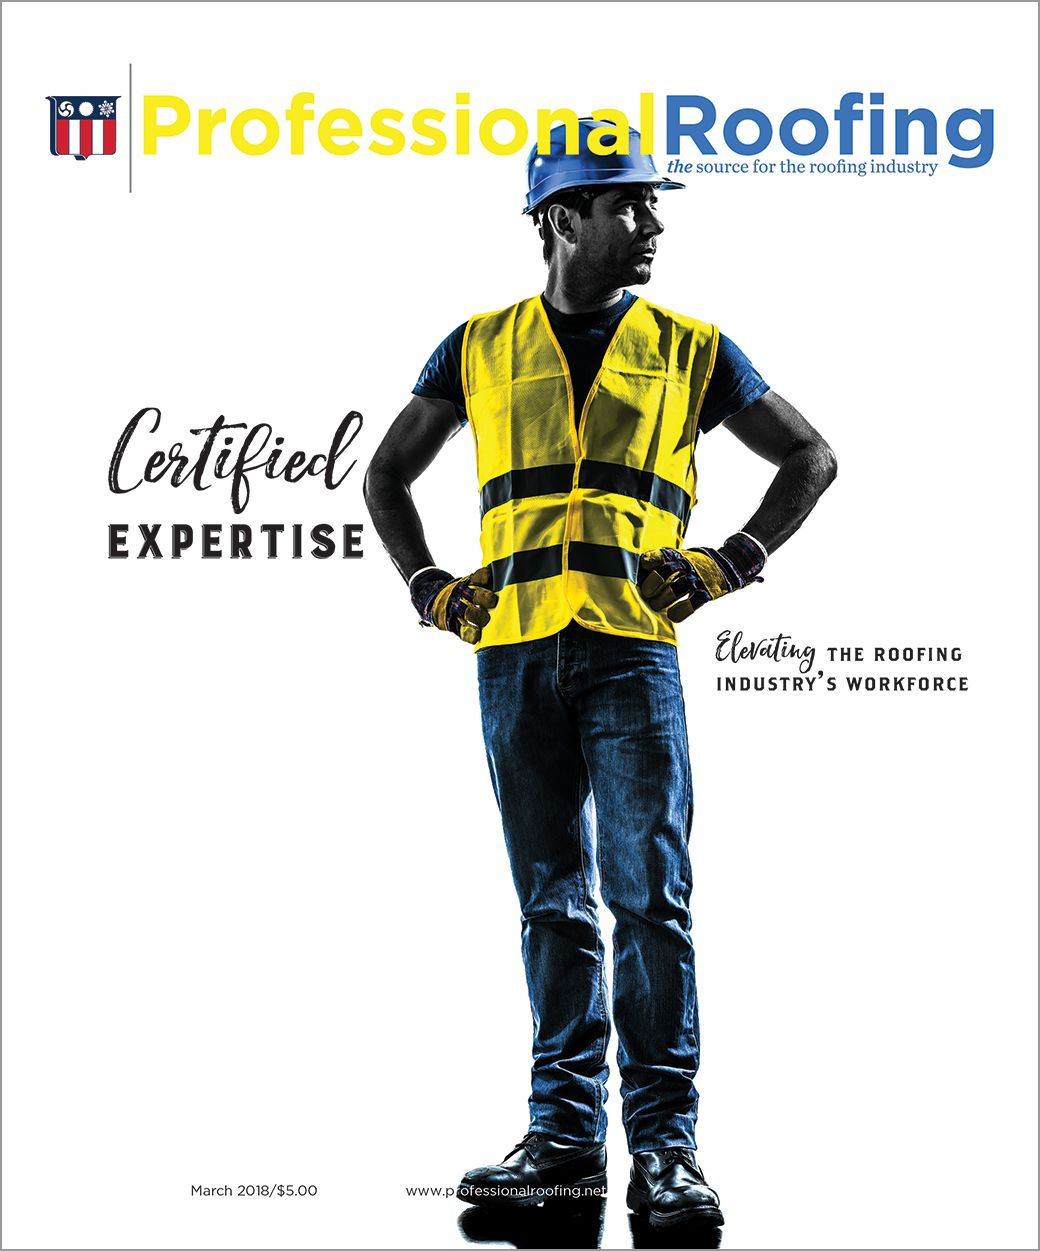 Professional Roofing Magazine 3/1/2018